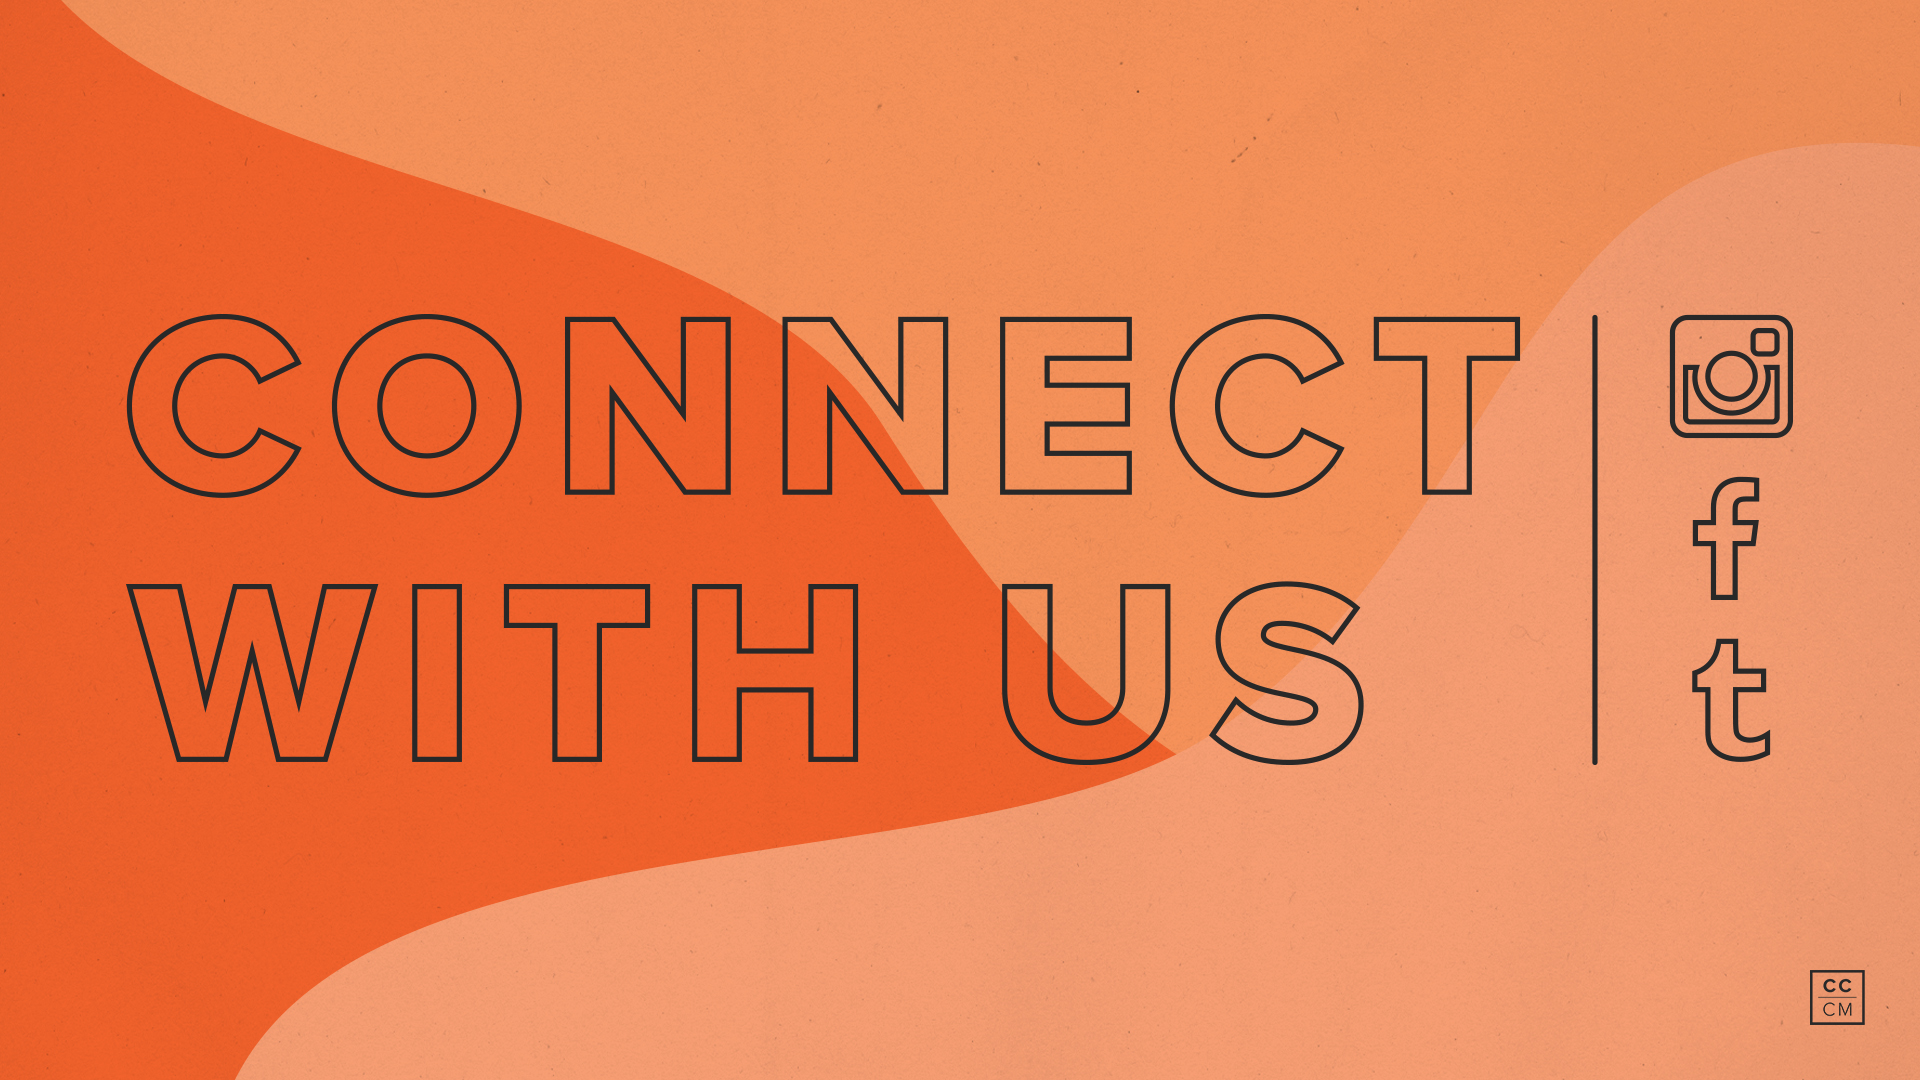 ConnectWithUs 1920x1080 B4